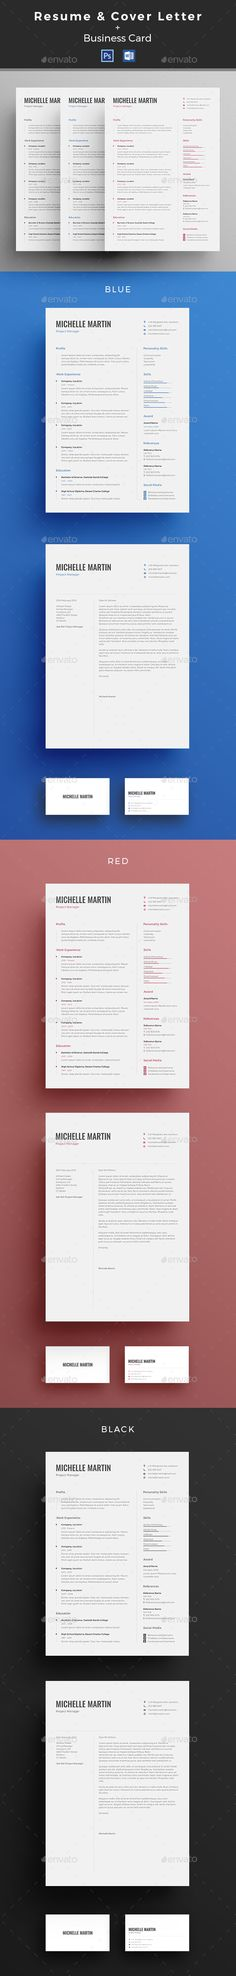 Modern Resume Template - The Amelia